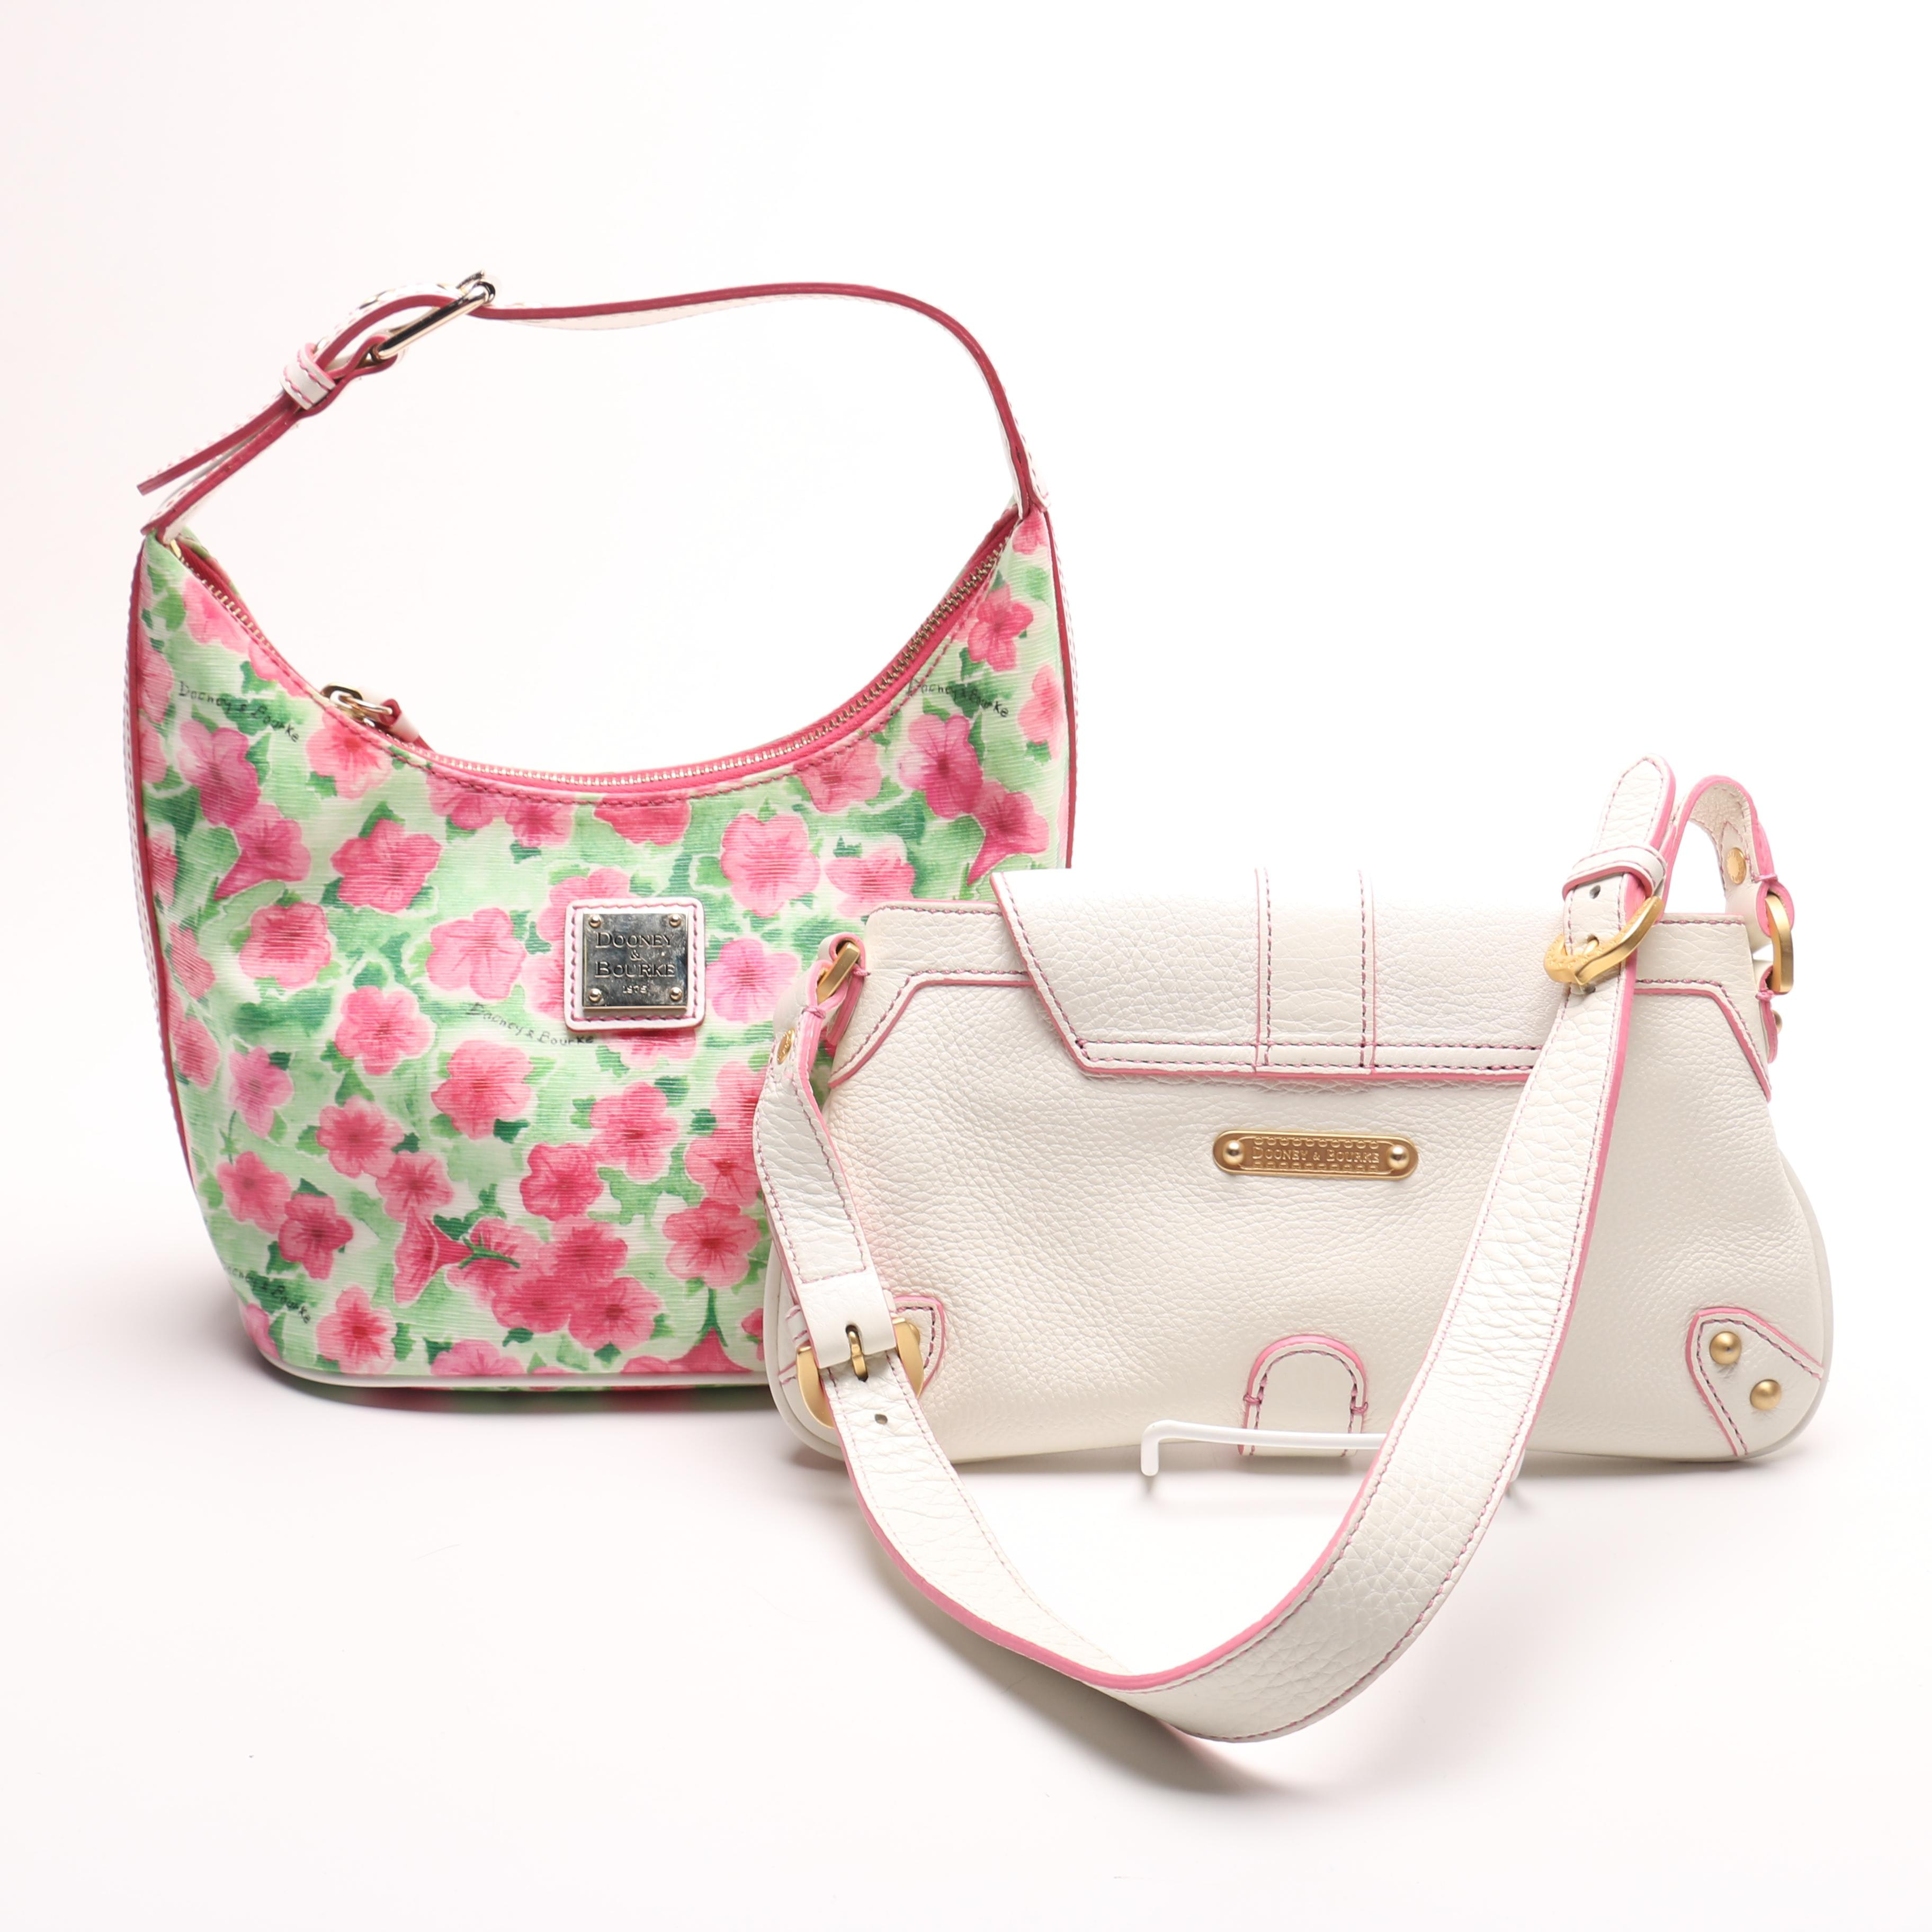 Dooney and Bourke Pink Petunia and White Leather Mini Slip Flap